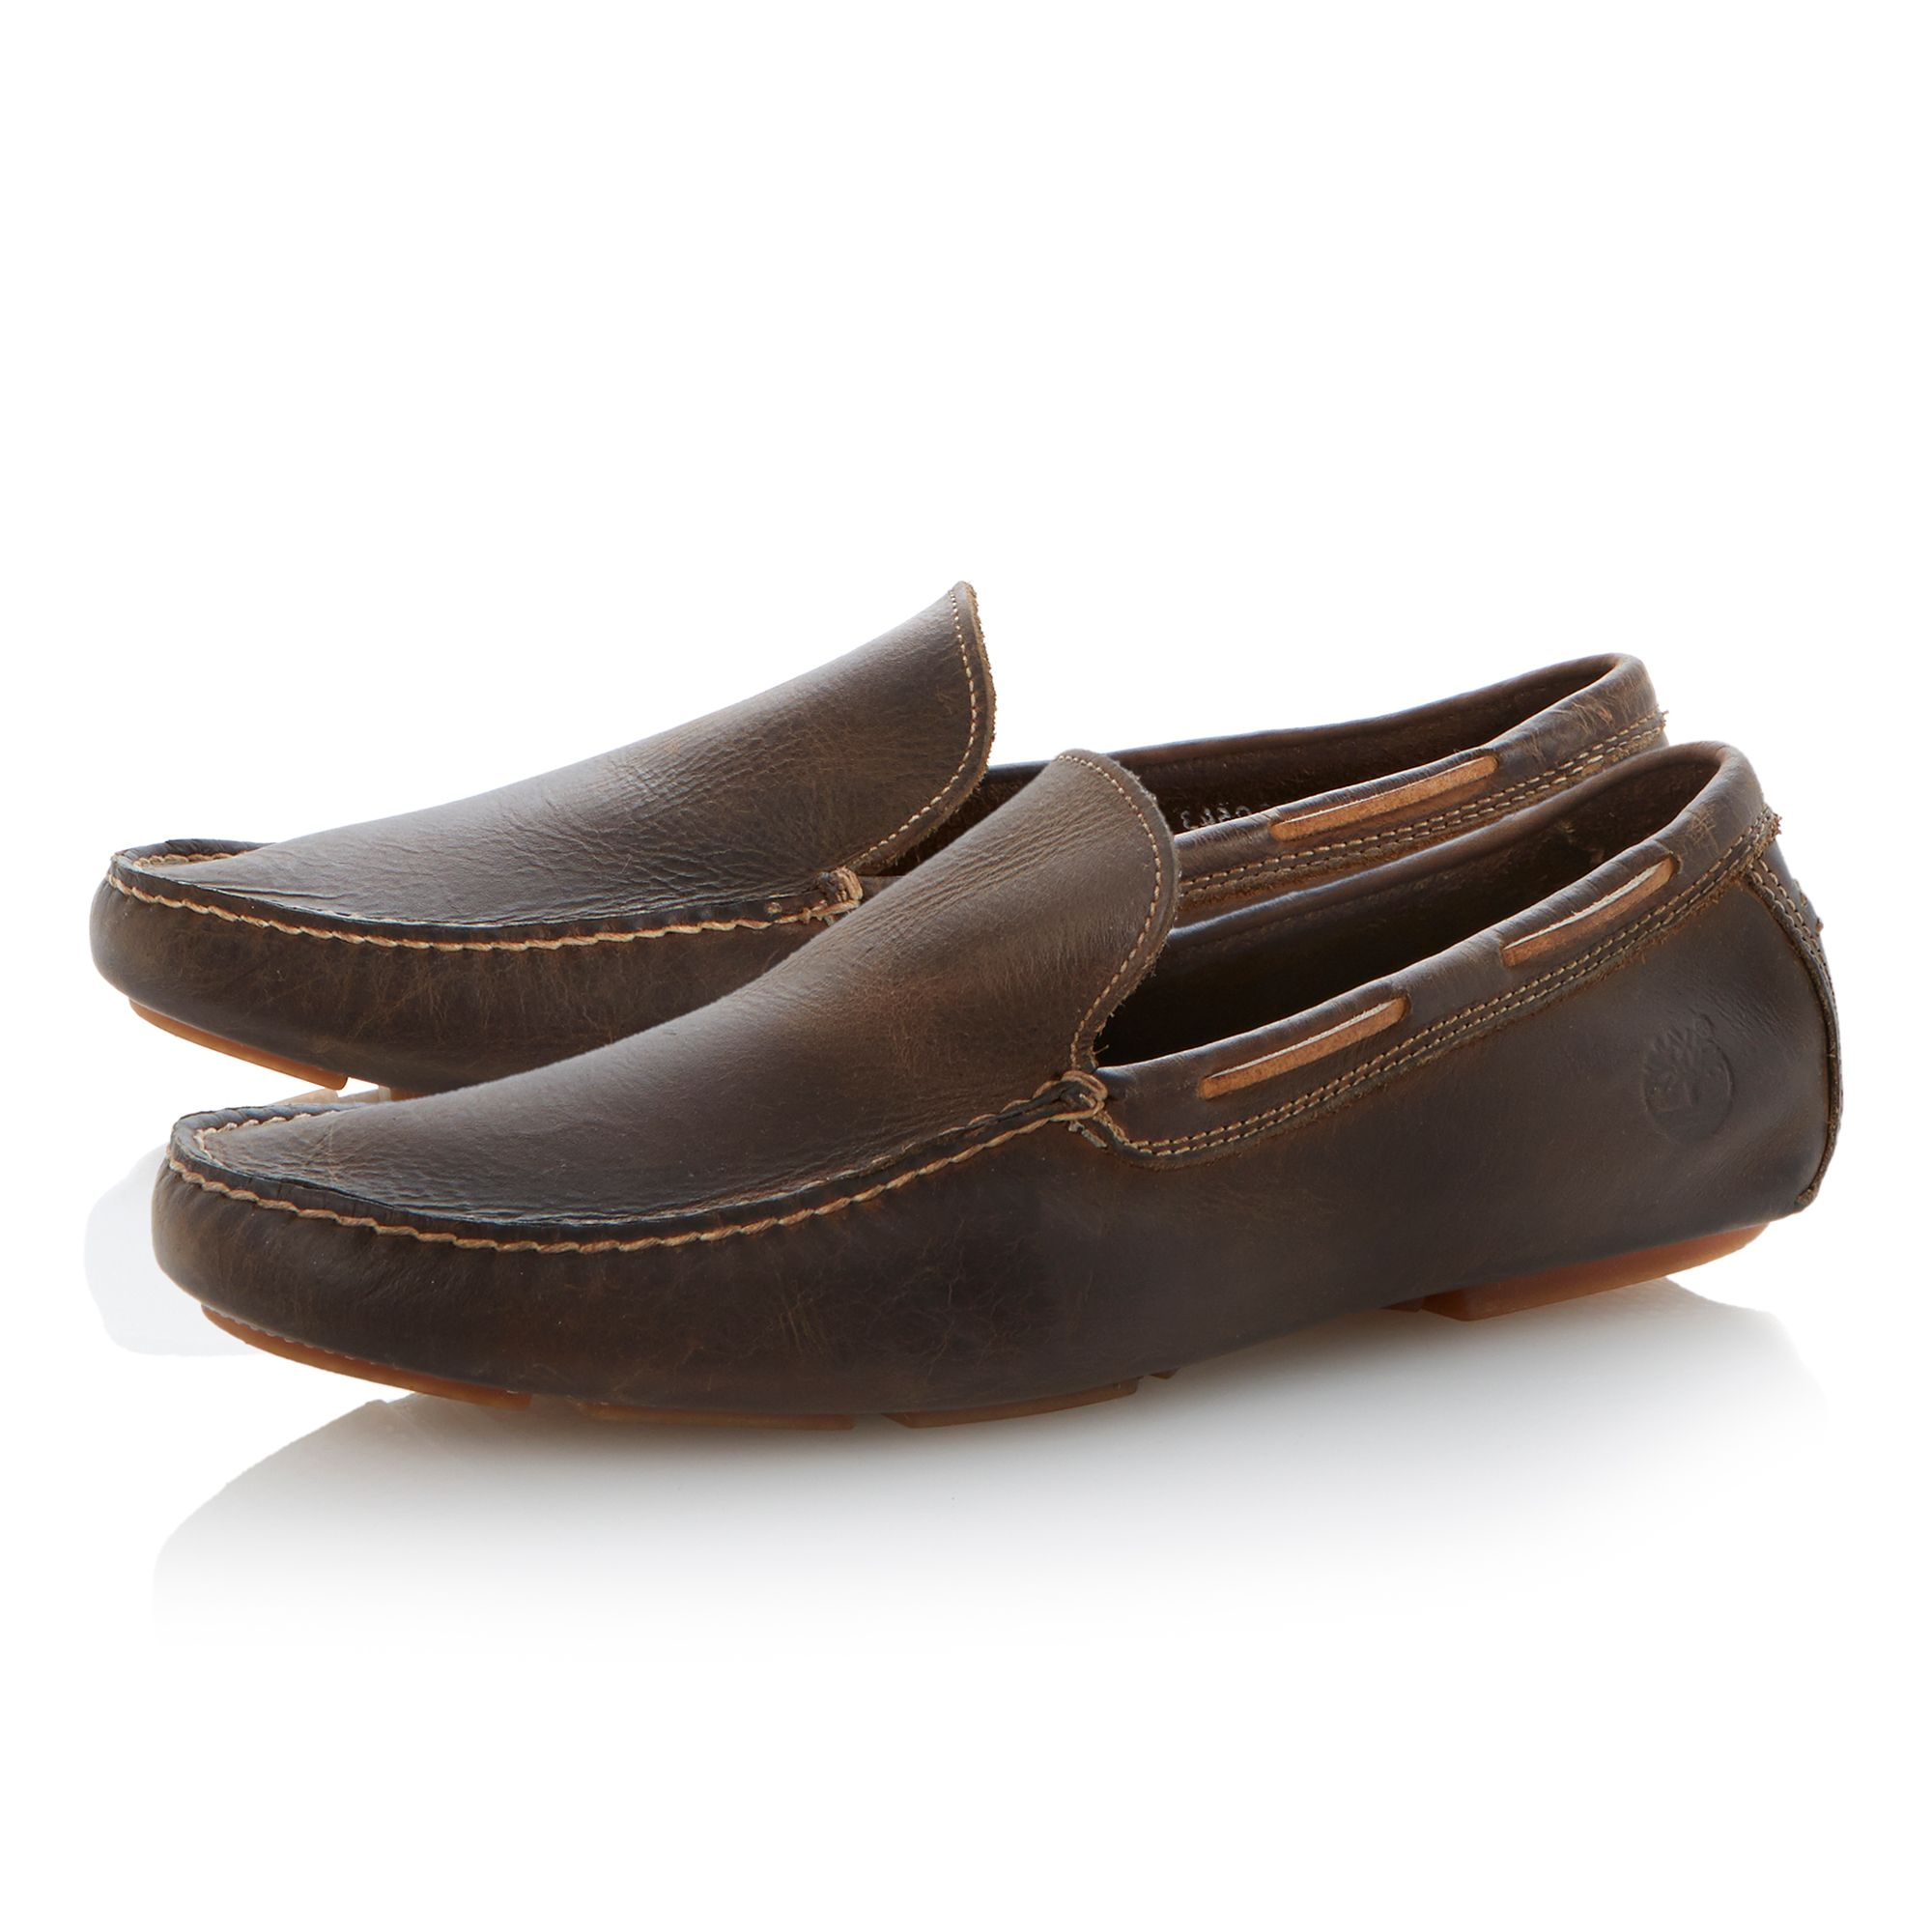 Brown Loafer Shoes With Jeans Men